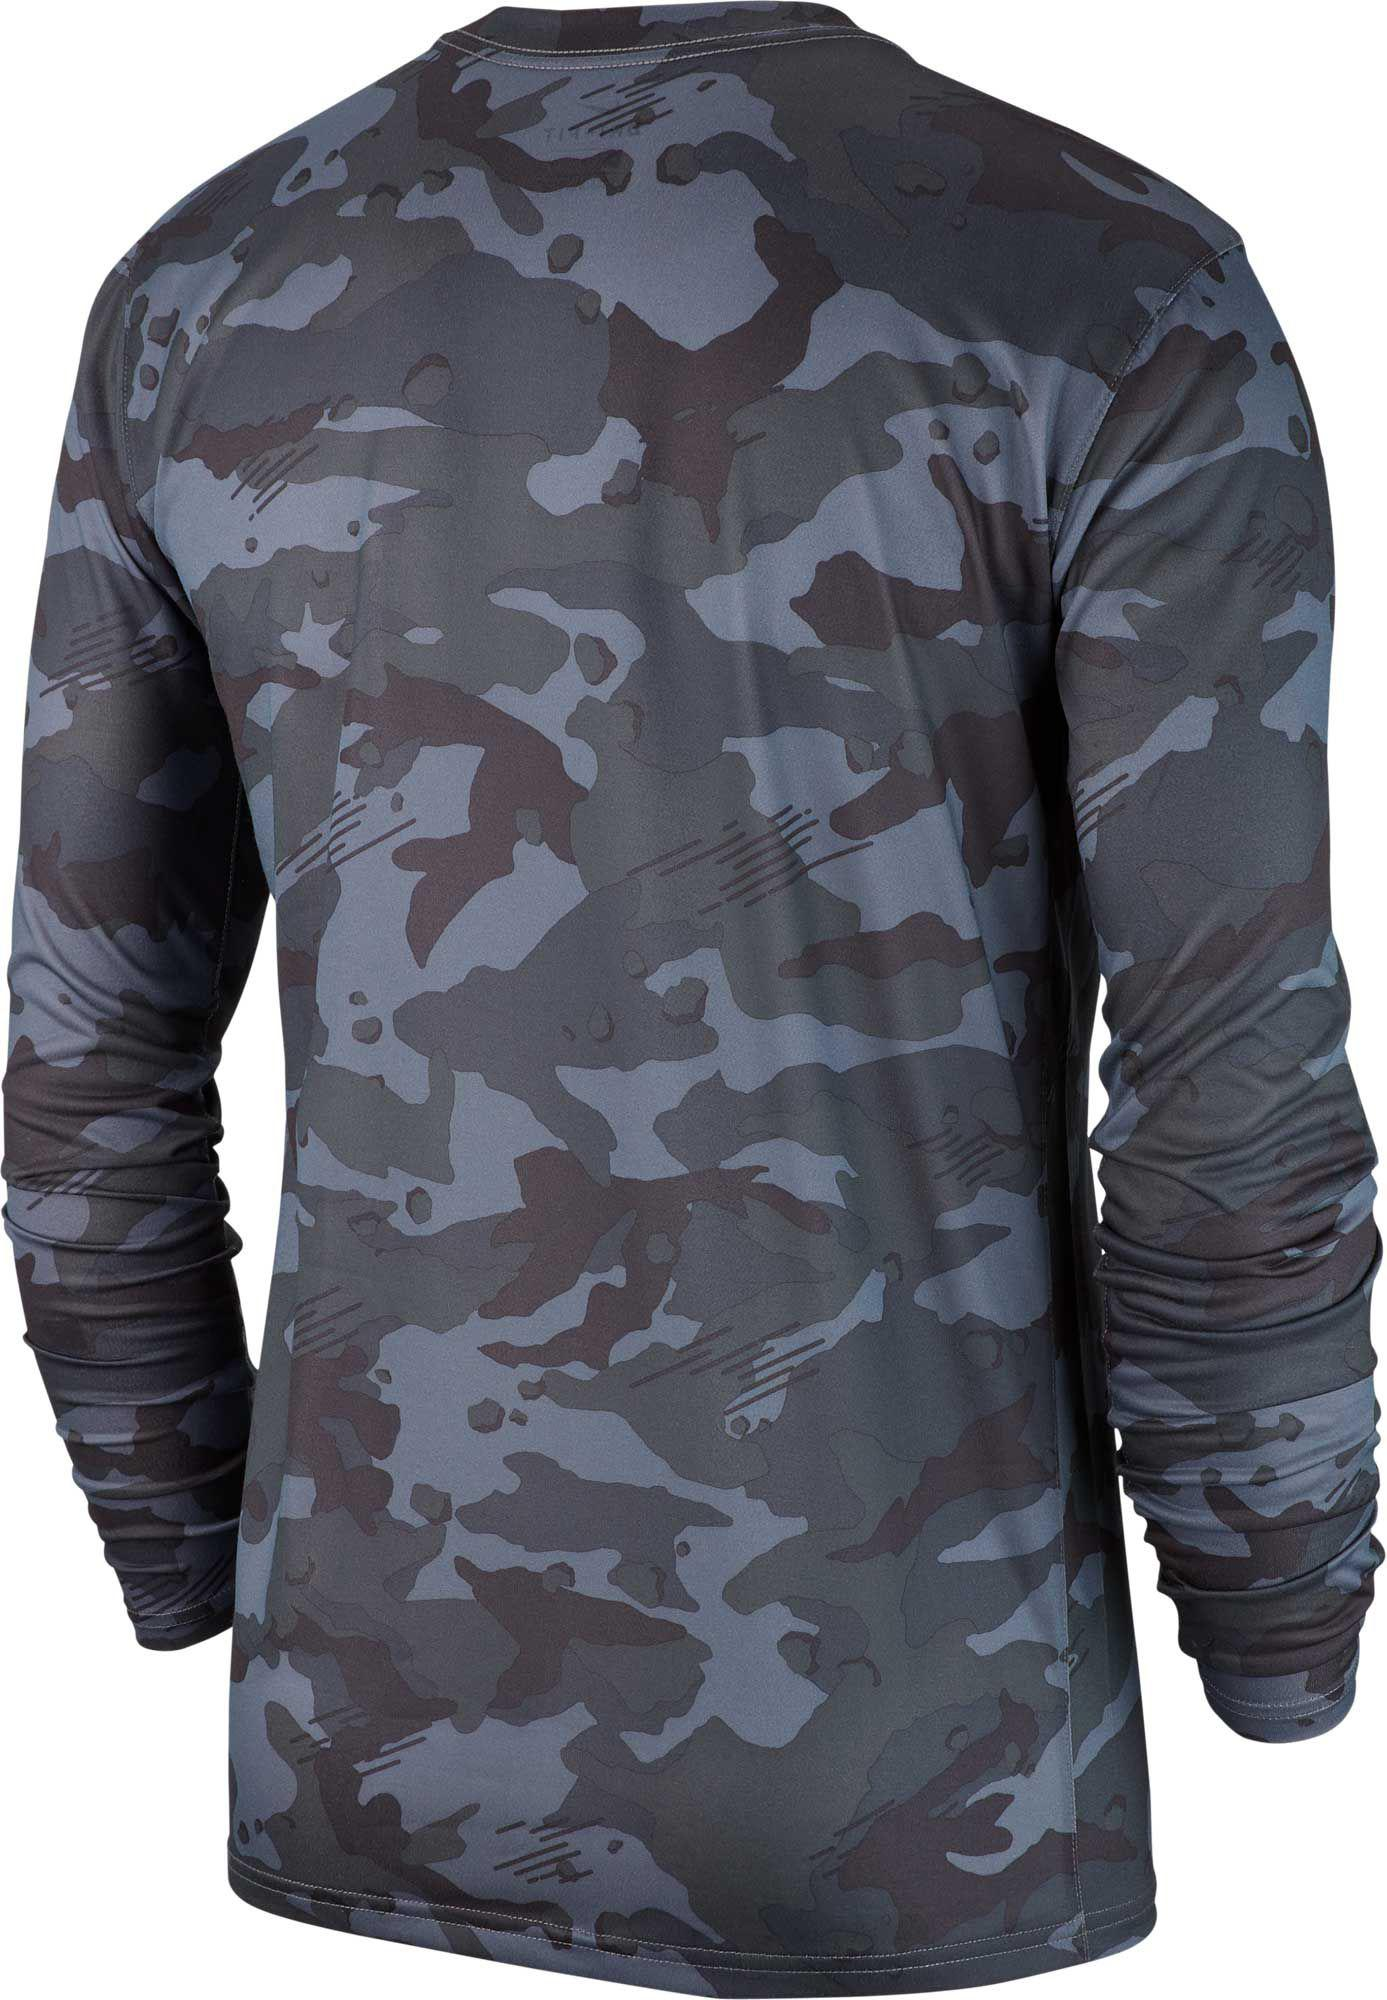 6dab23015 Nike Dry Legend Camo Long Sleeve Tee in Gray for Men - Lyst